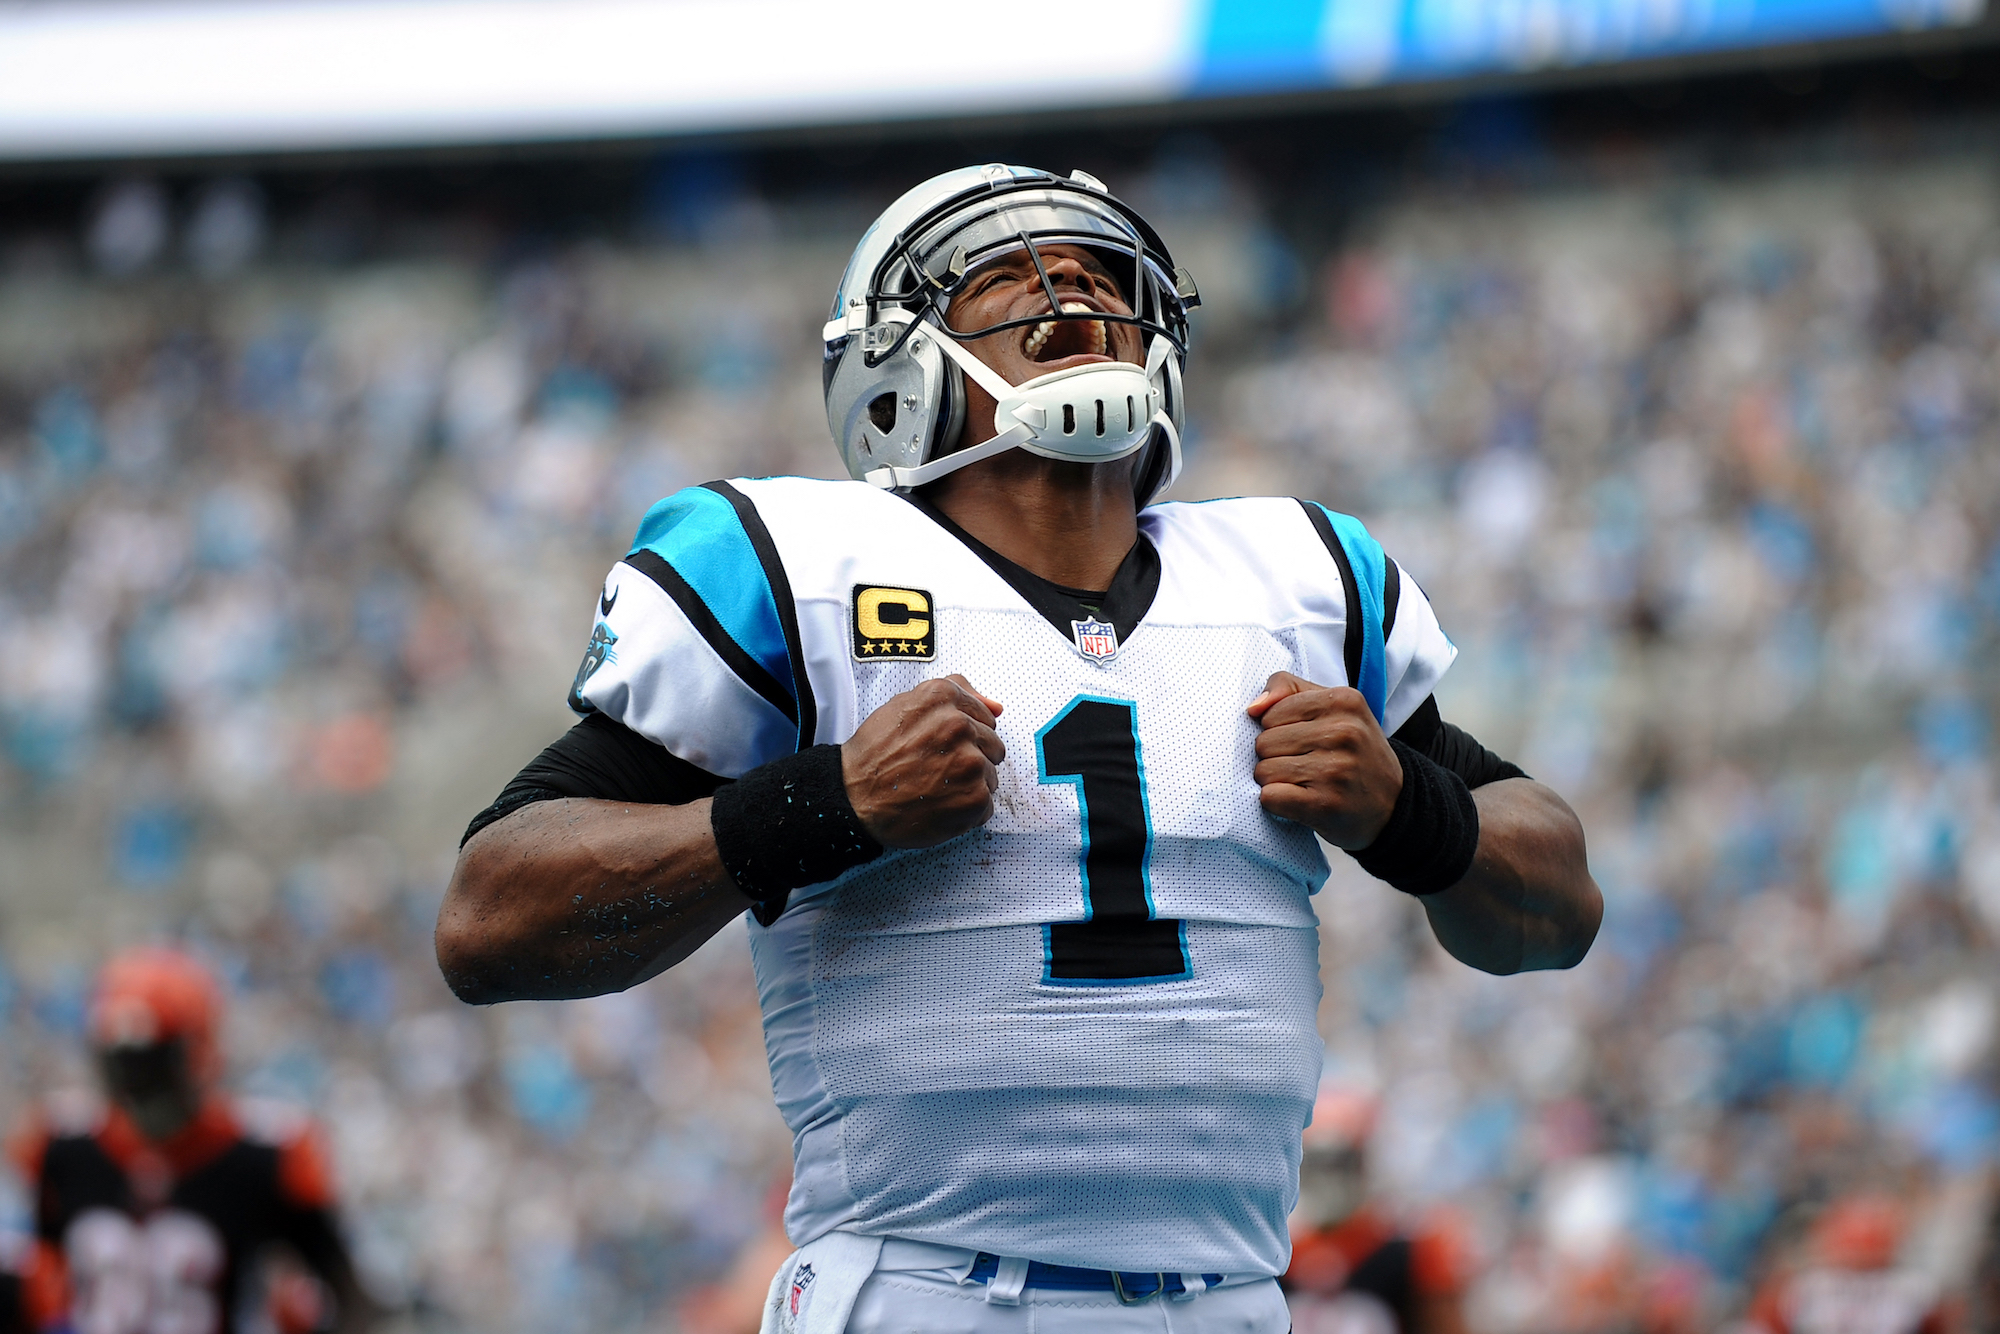 Cam Newton is feeling confident ahead of the 2020 NFL season.